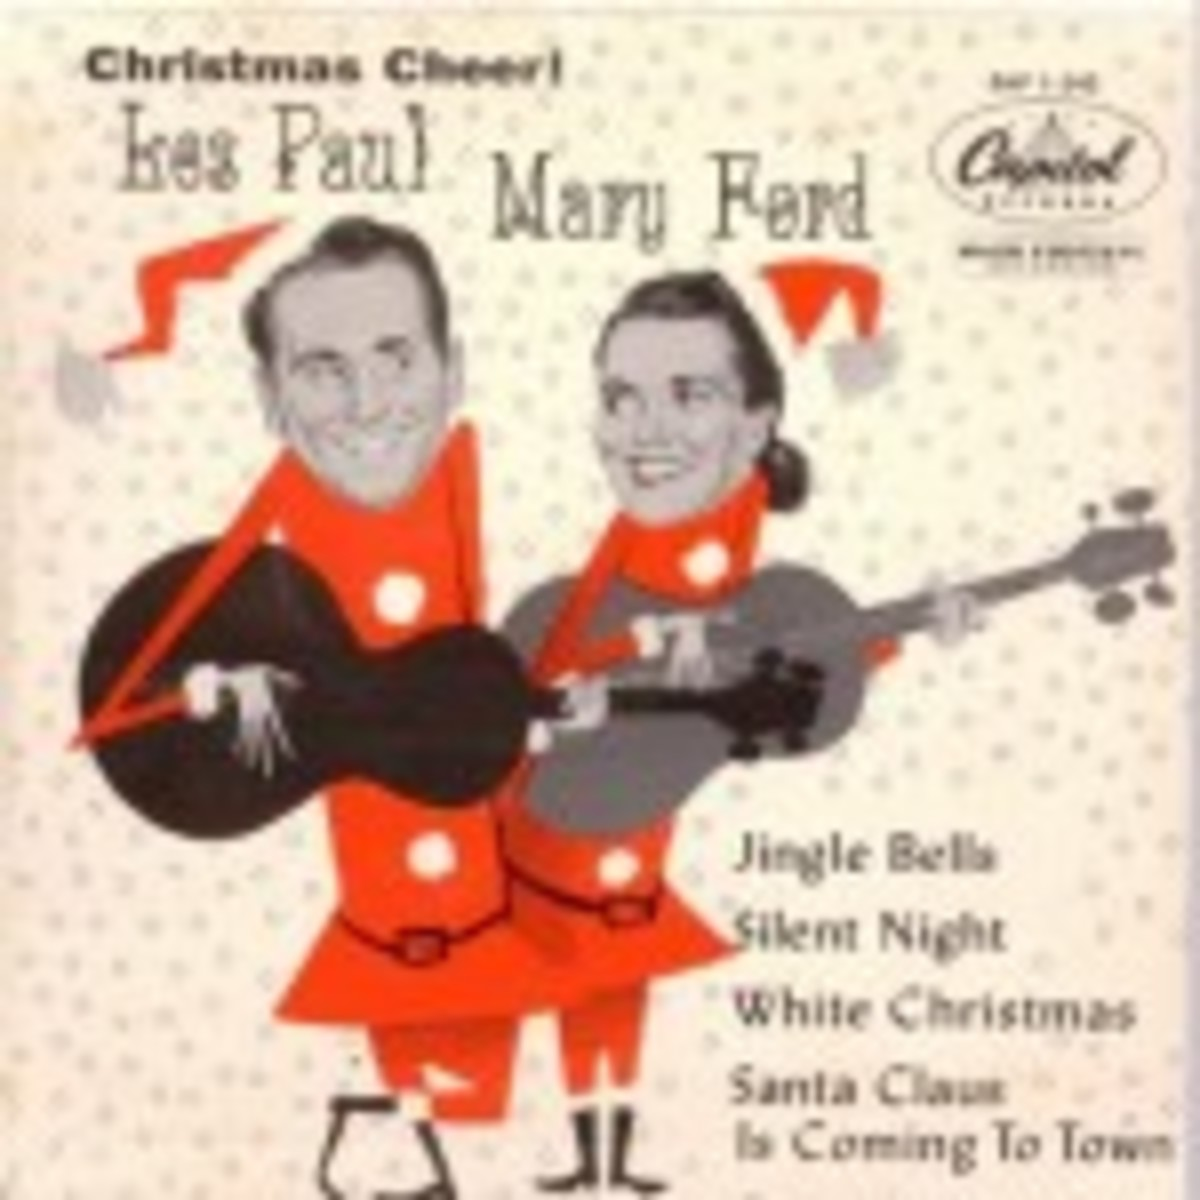 Les Paul and Mary Ford Jingle Bells